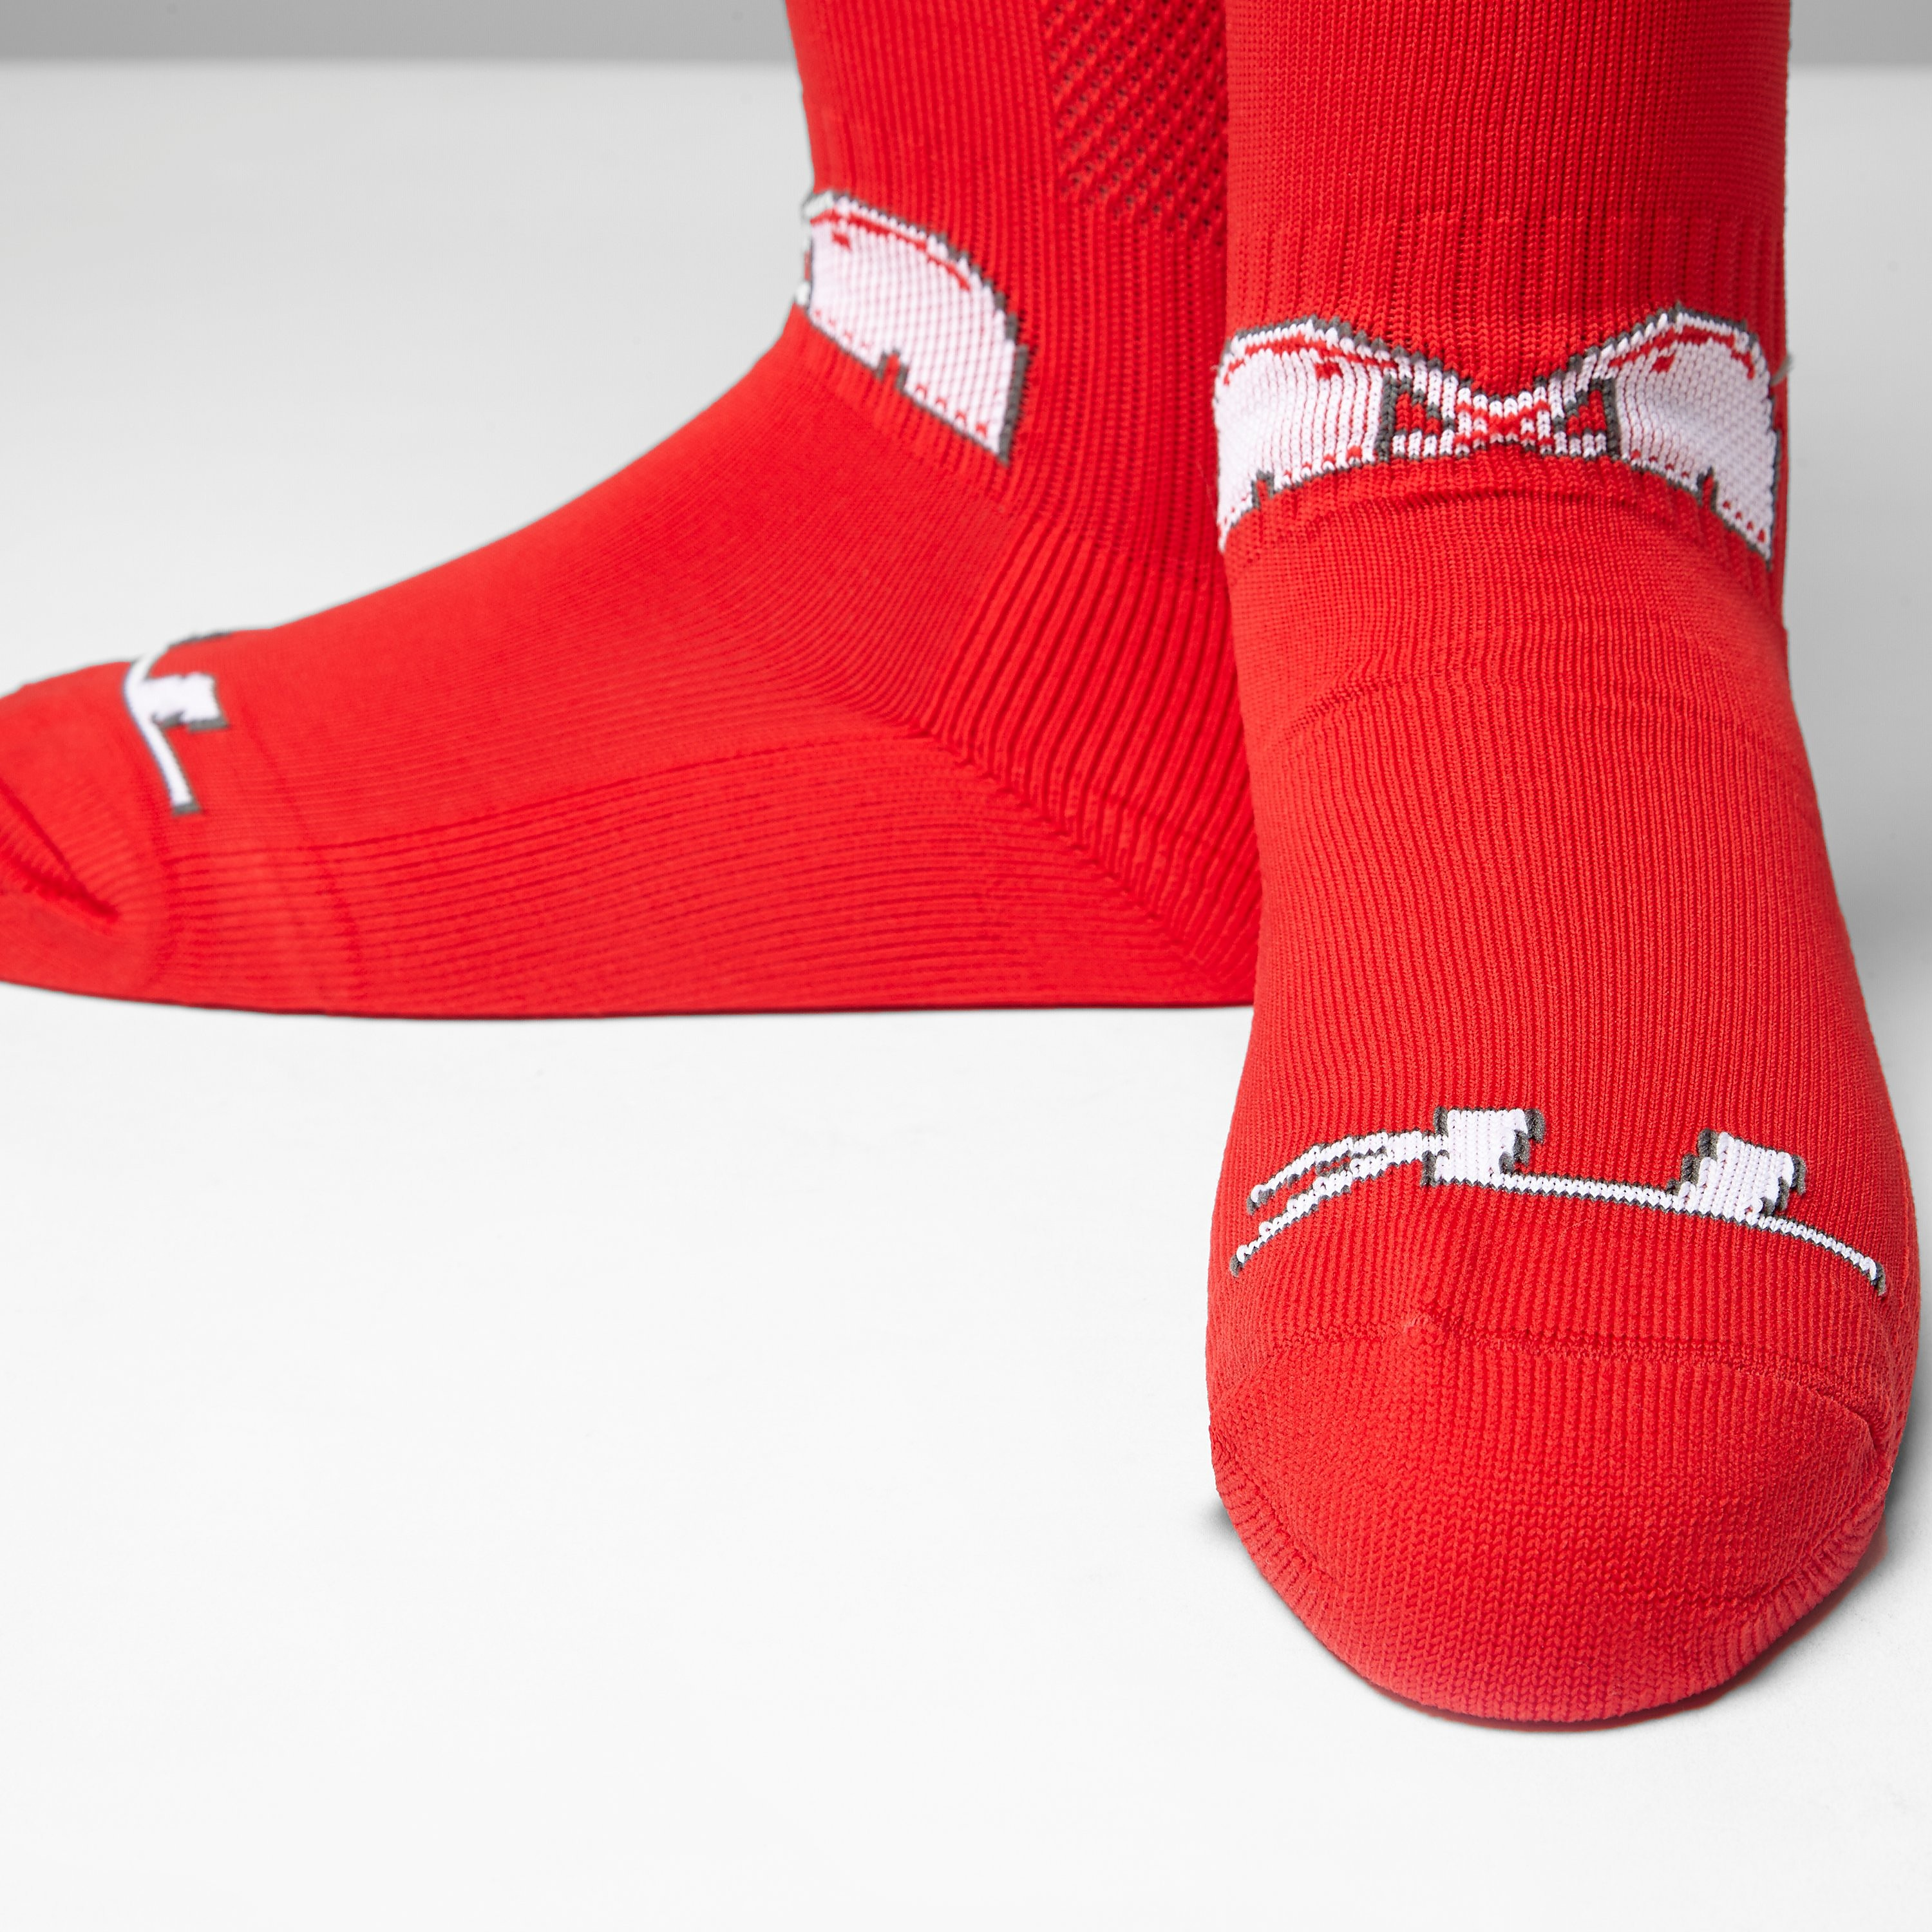 TK Hockey Socks Exclusive without Foot